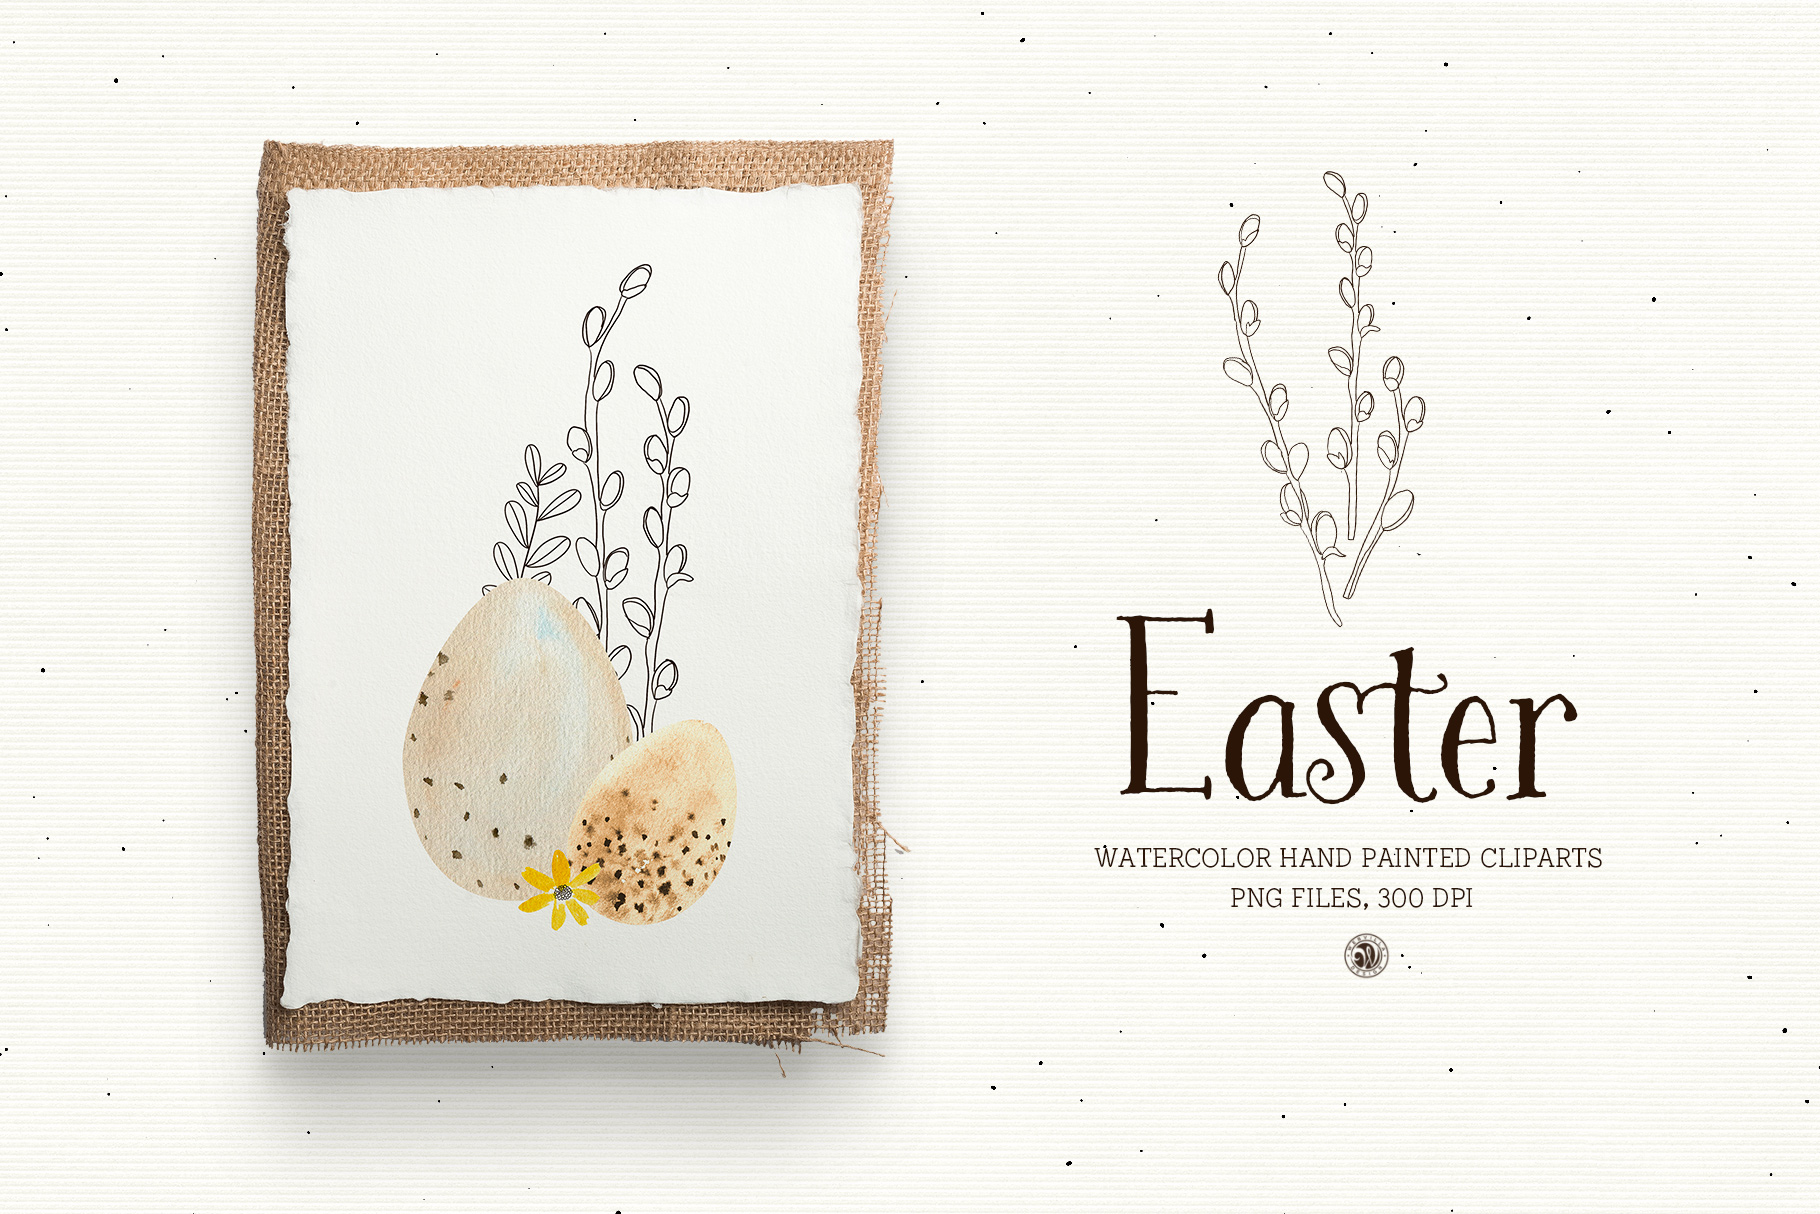 Easter - Price $11